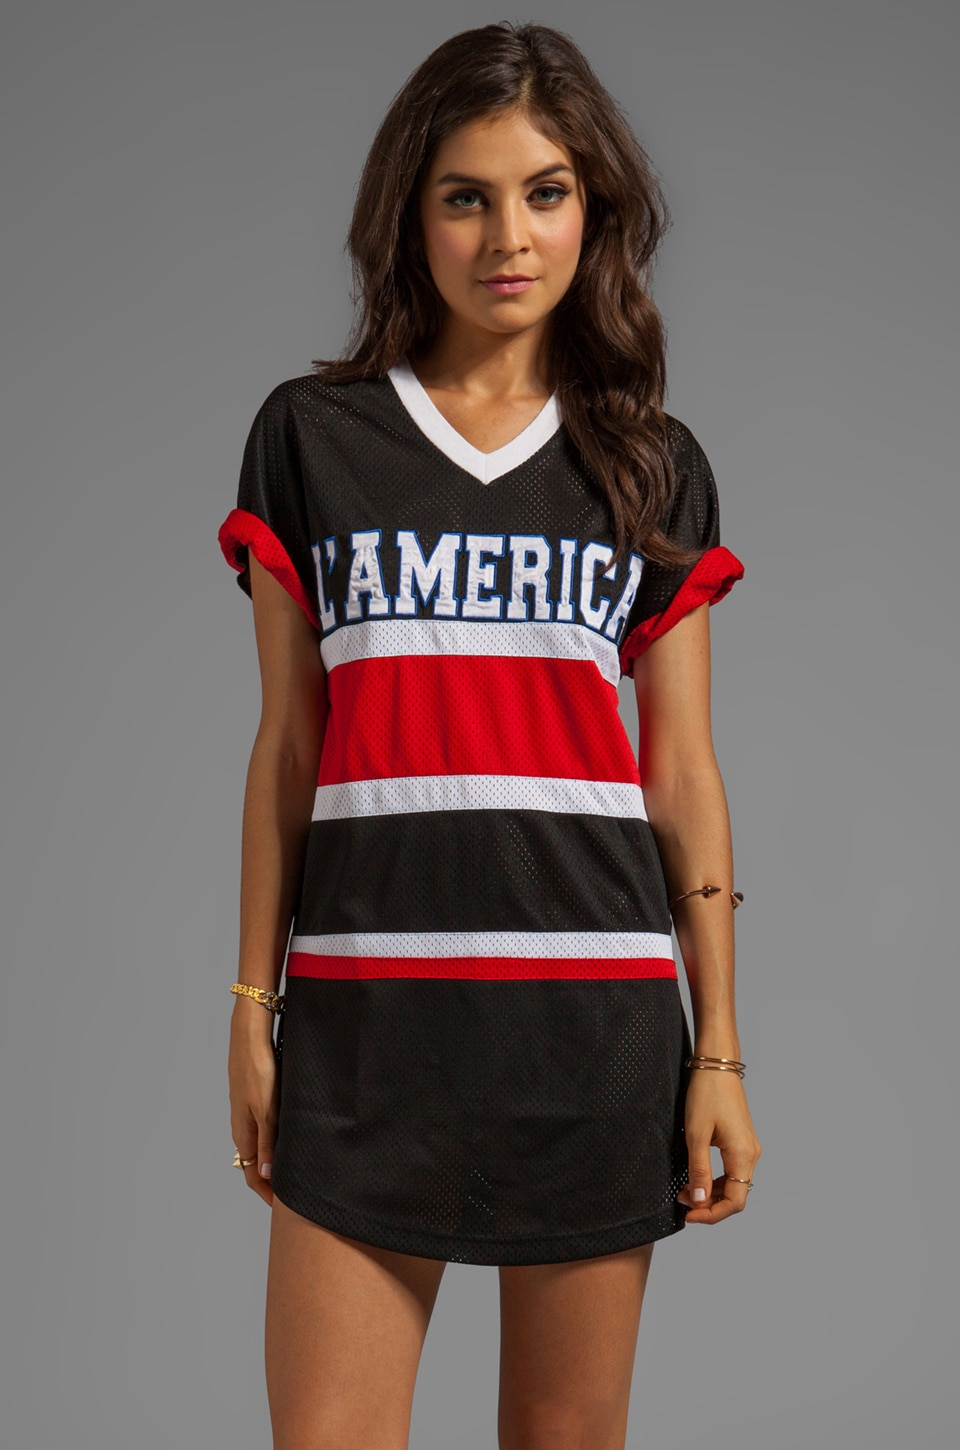 L'AMERICA Dream Team Over Sized Dress in Black/Red/White